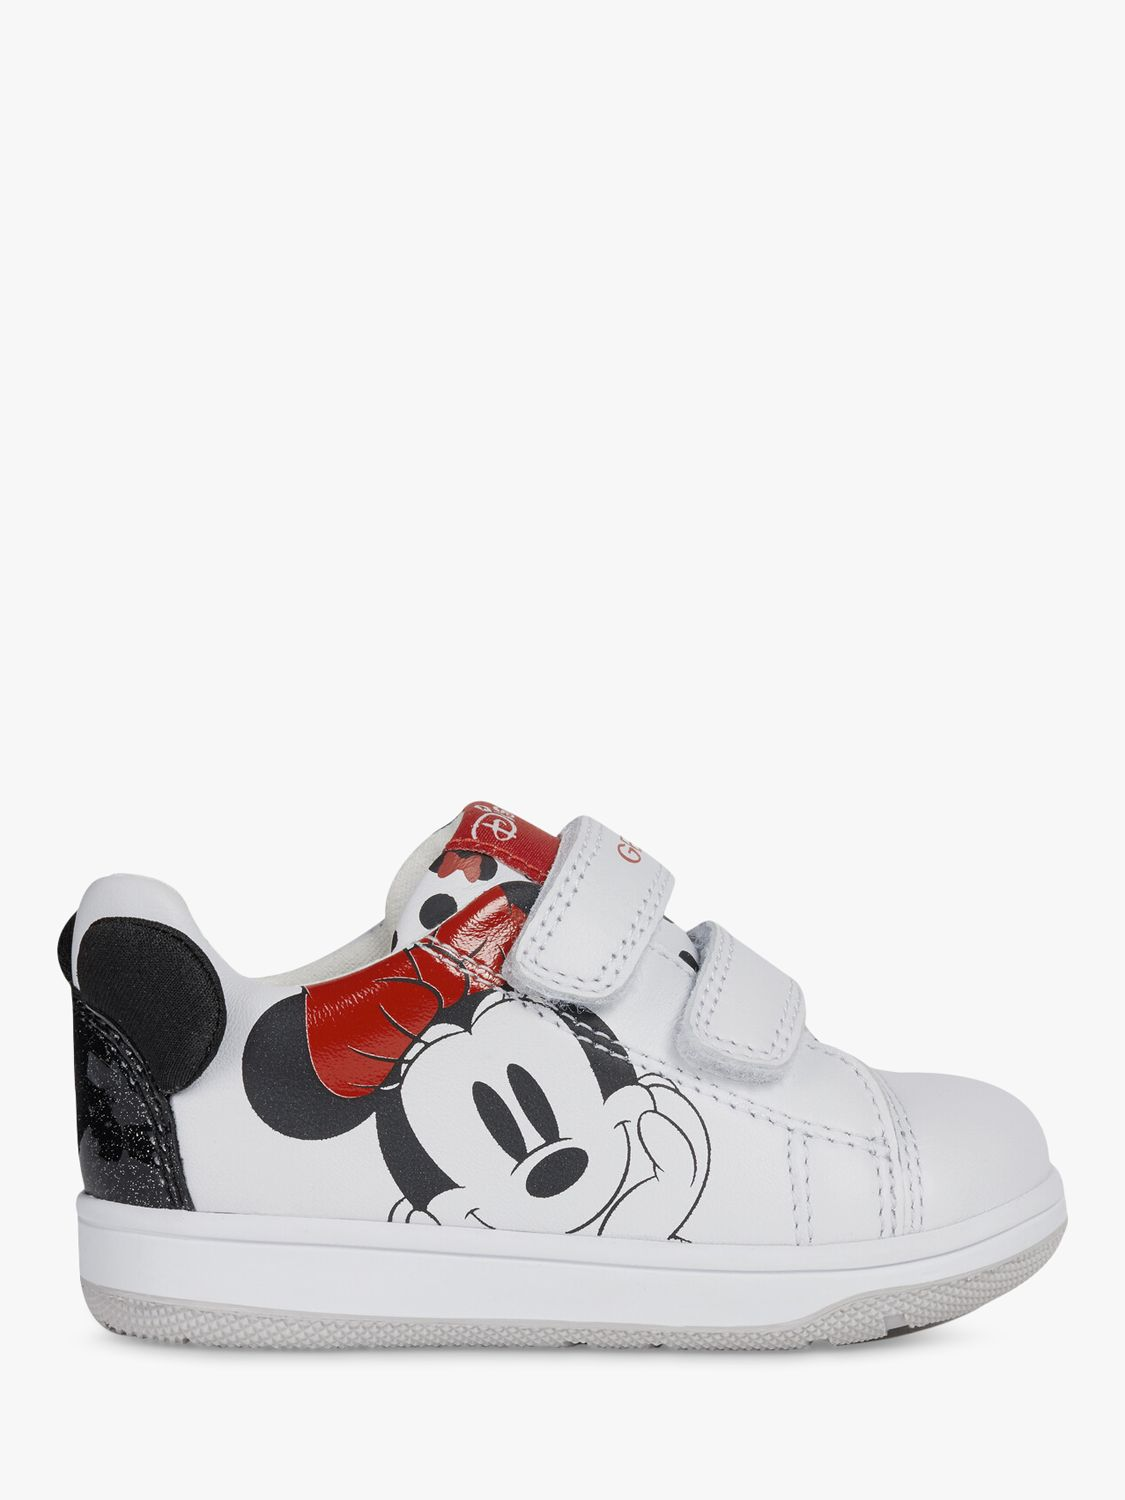 Geox Geox Junior New Flick Riptape Trainers, White